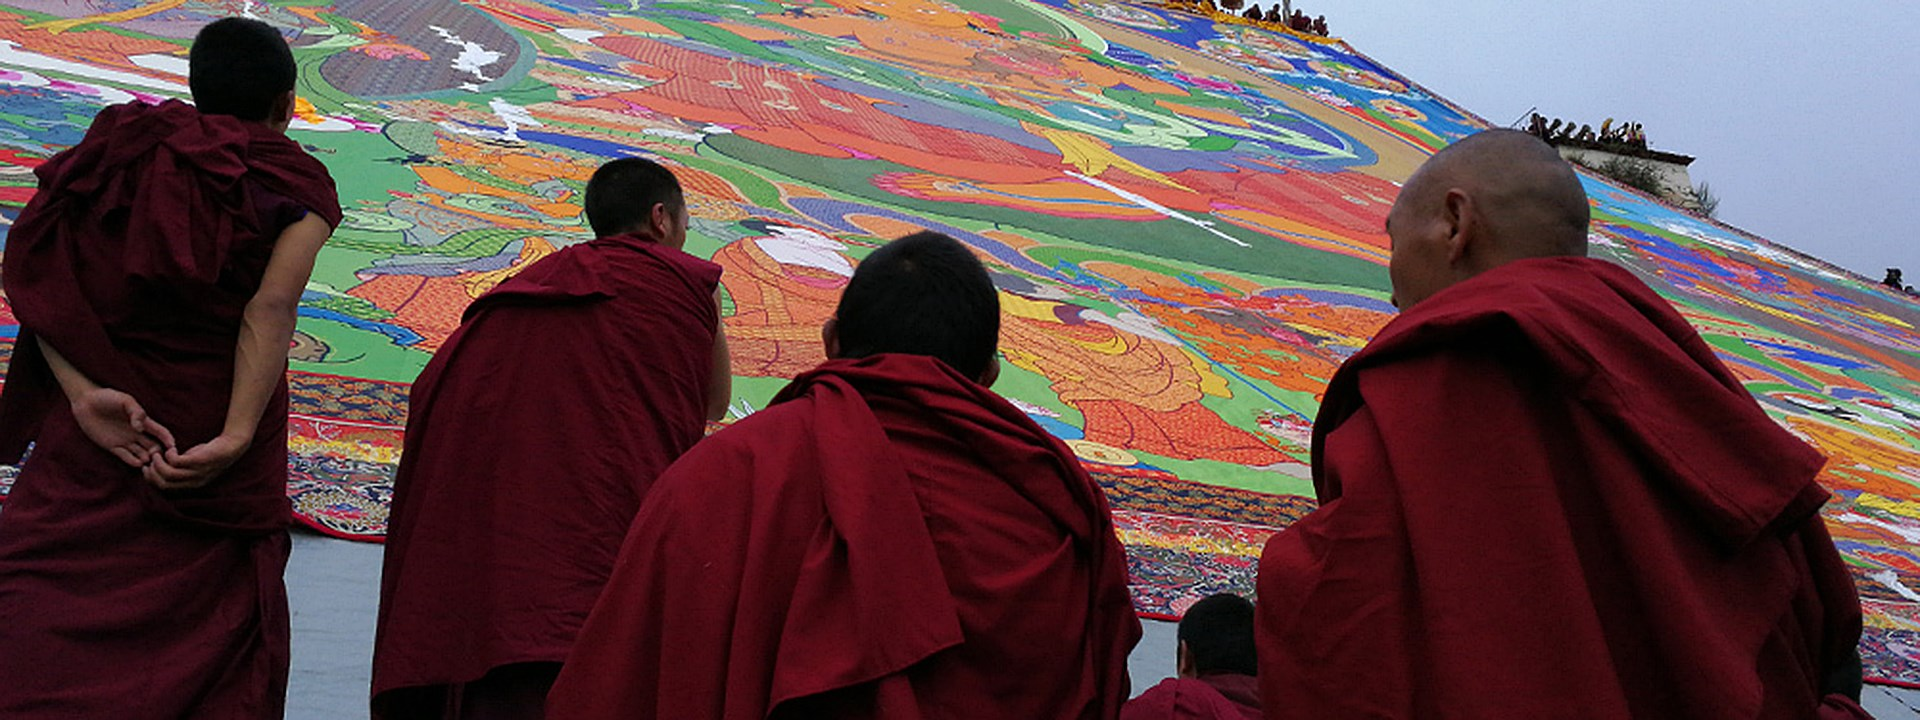 Shoton Festival in Lhasa